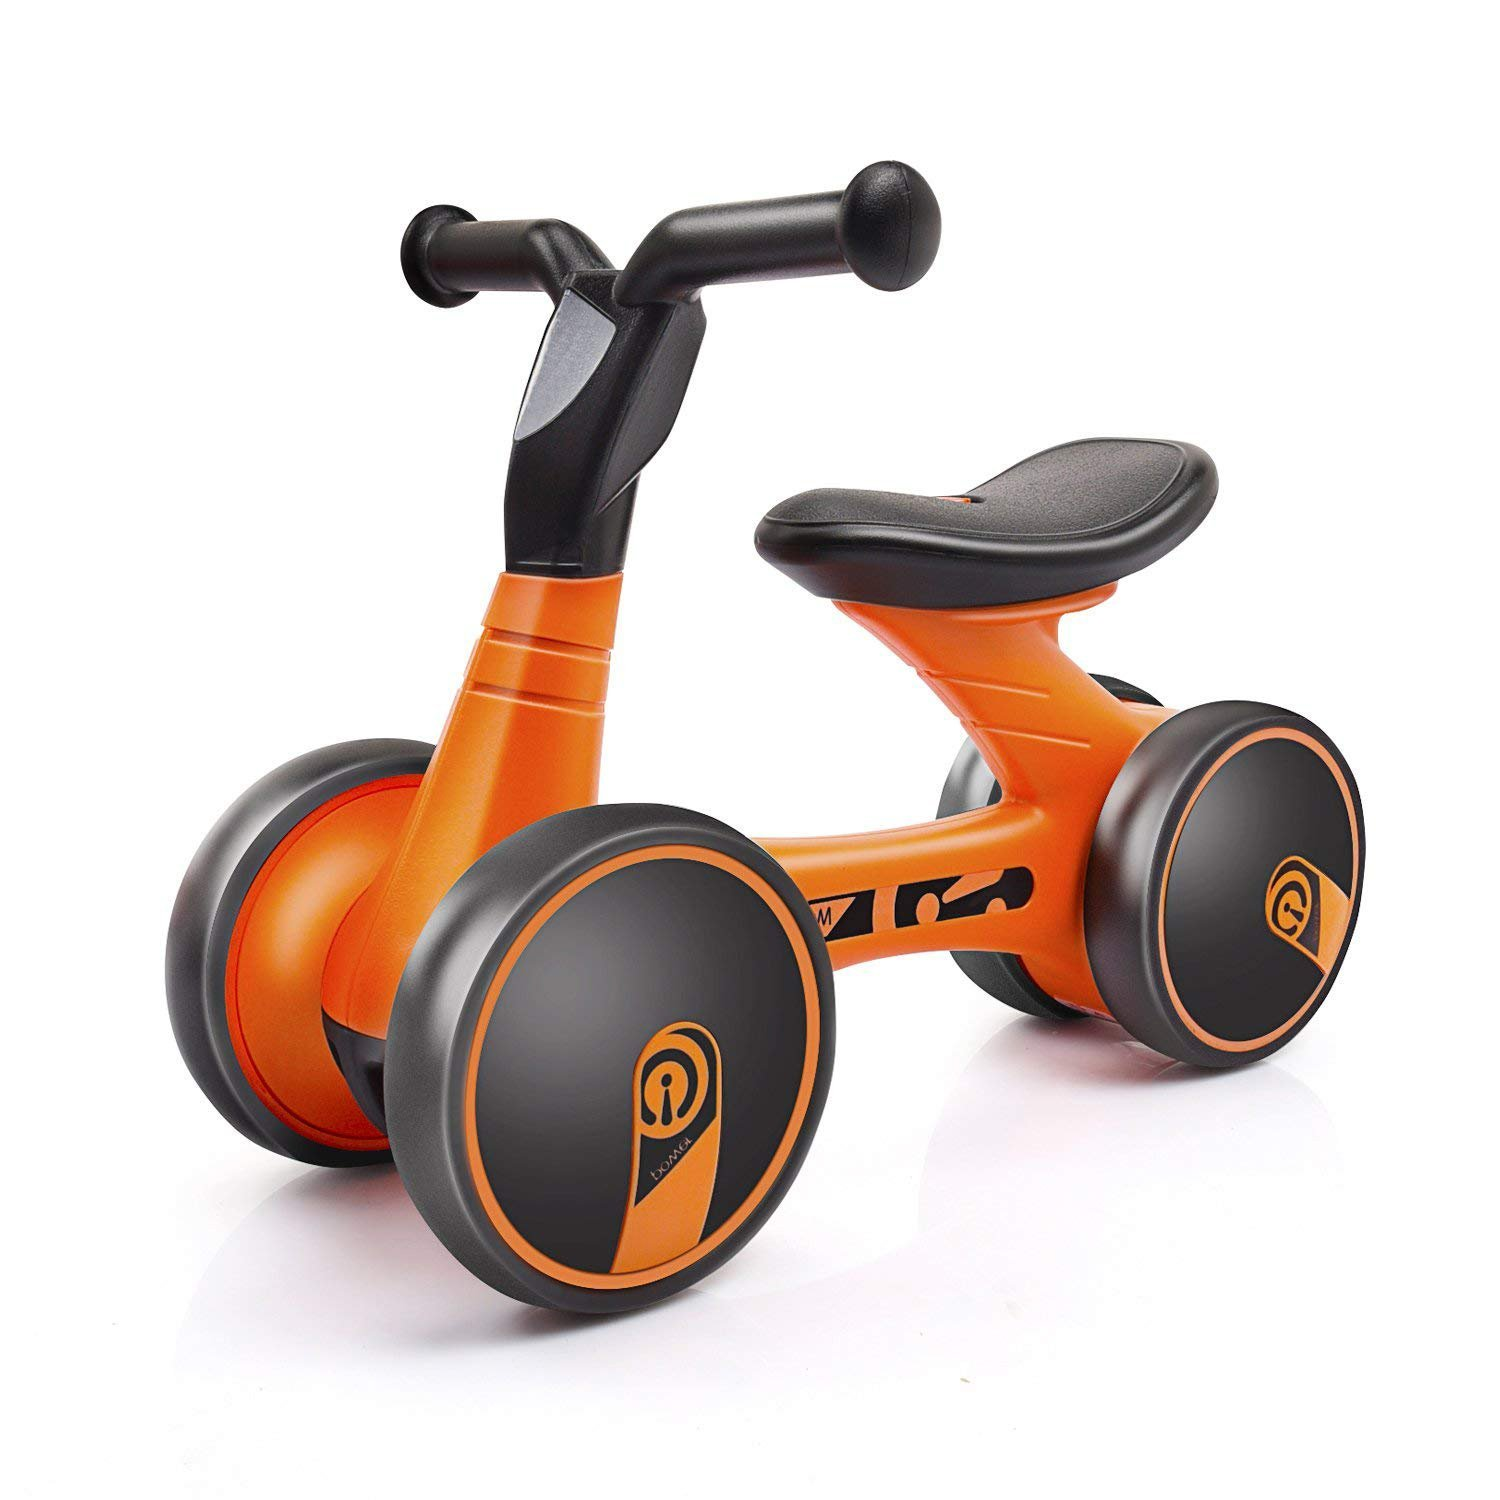 XJD Baby Balance Bike Bicycle Toys Rides for 1 Years Old Boys Girls Baby Walker 10-24 Months No Foot Pedal Infant Three Wheels Toddler Bike